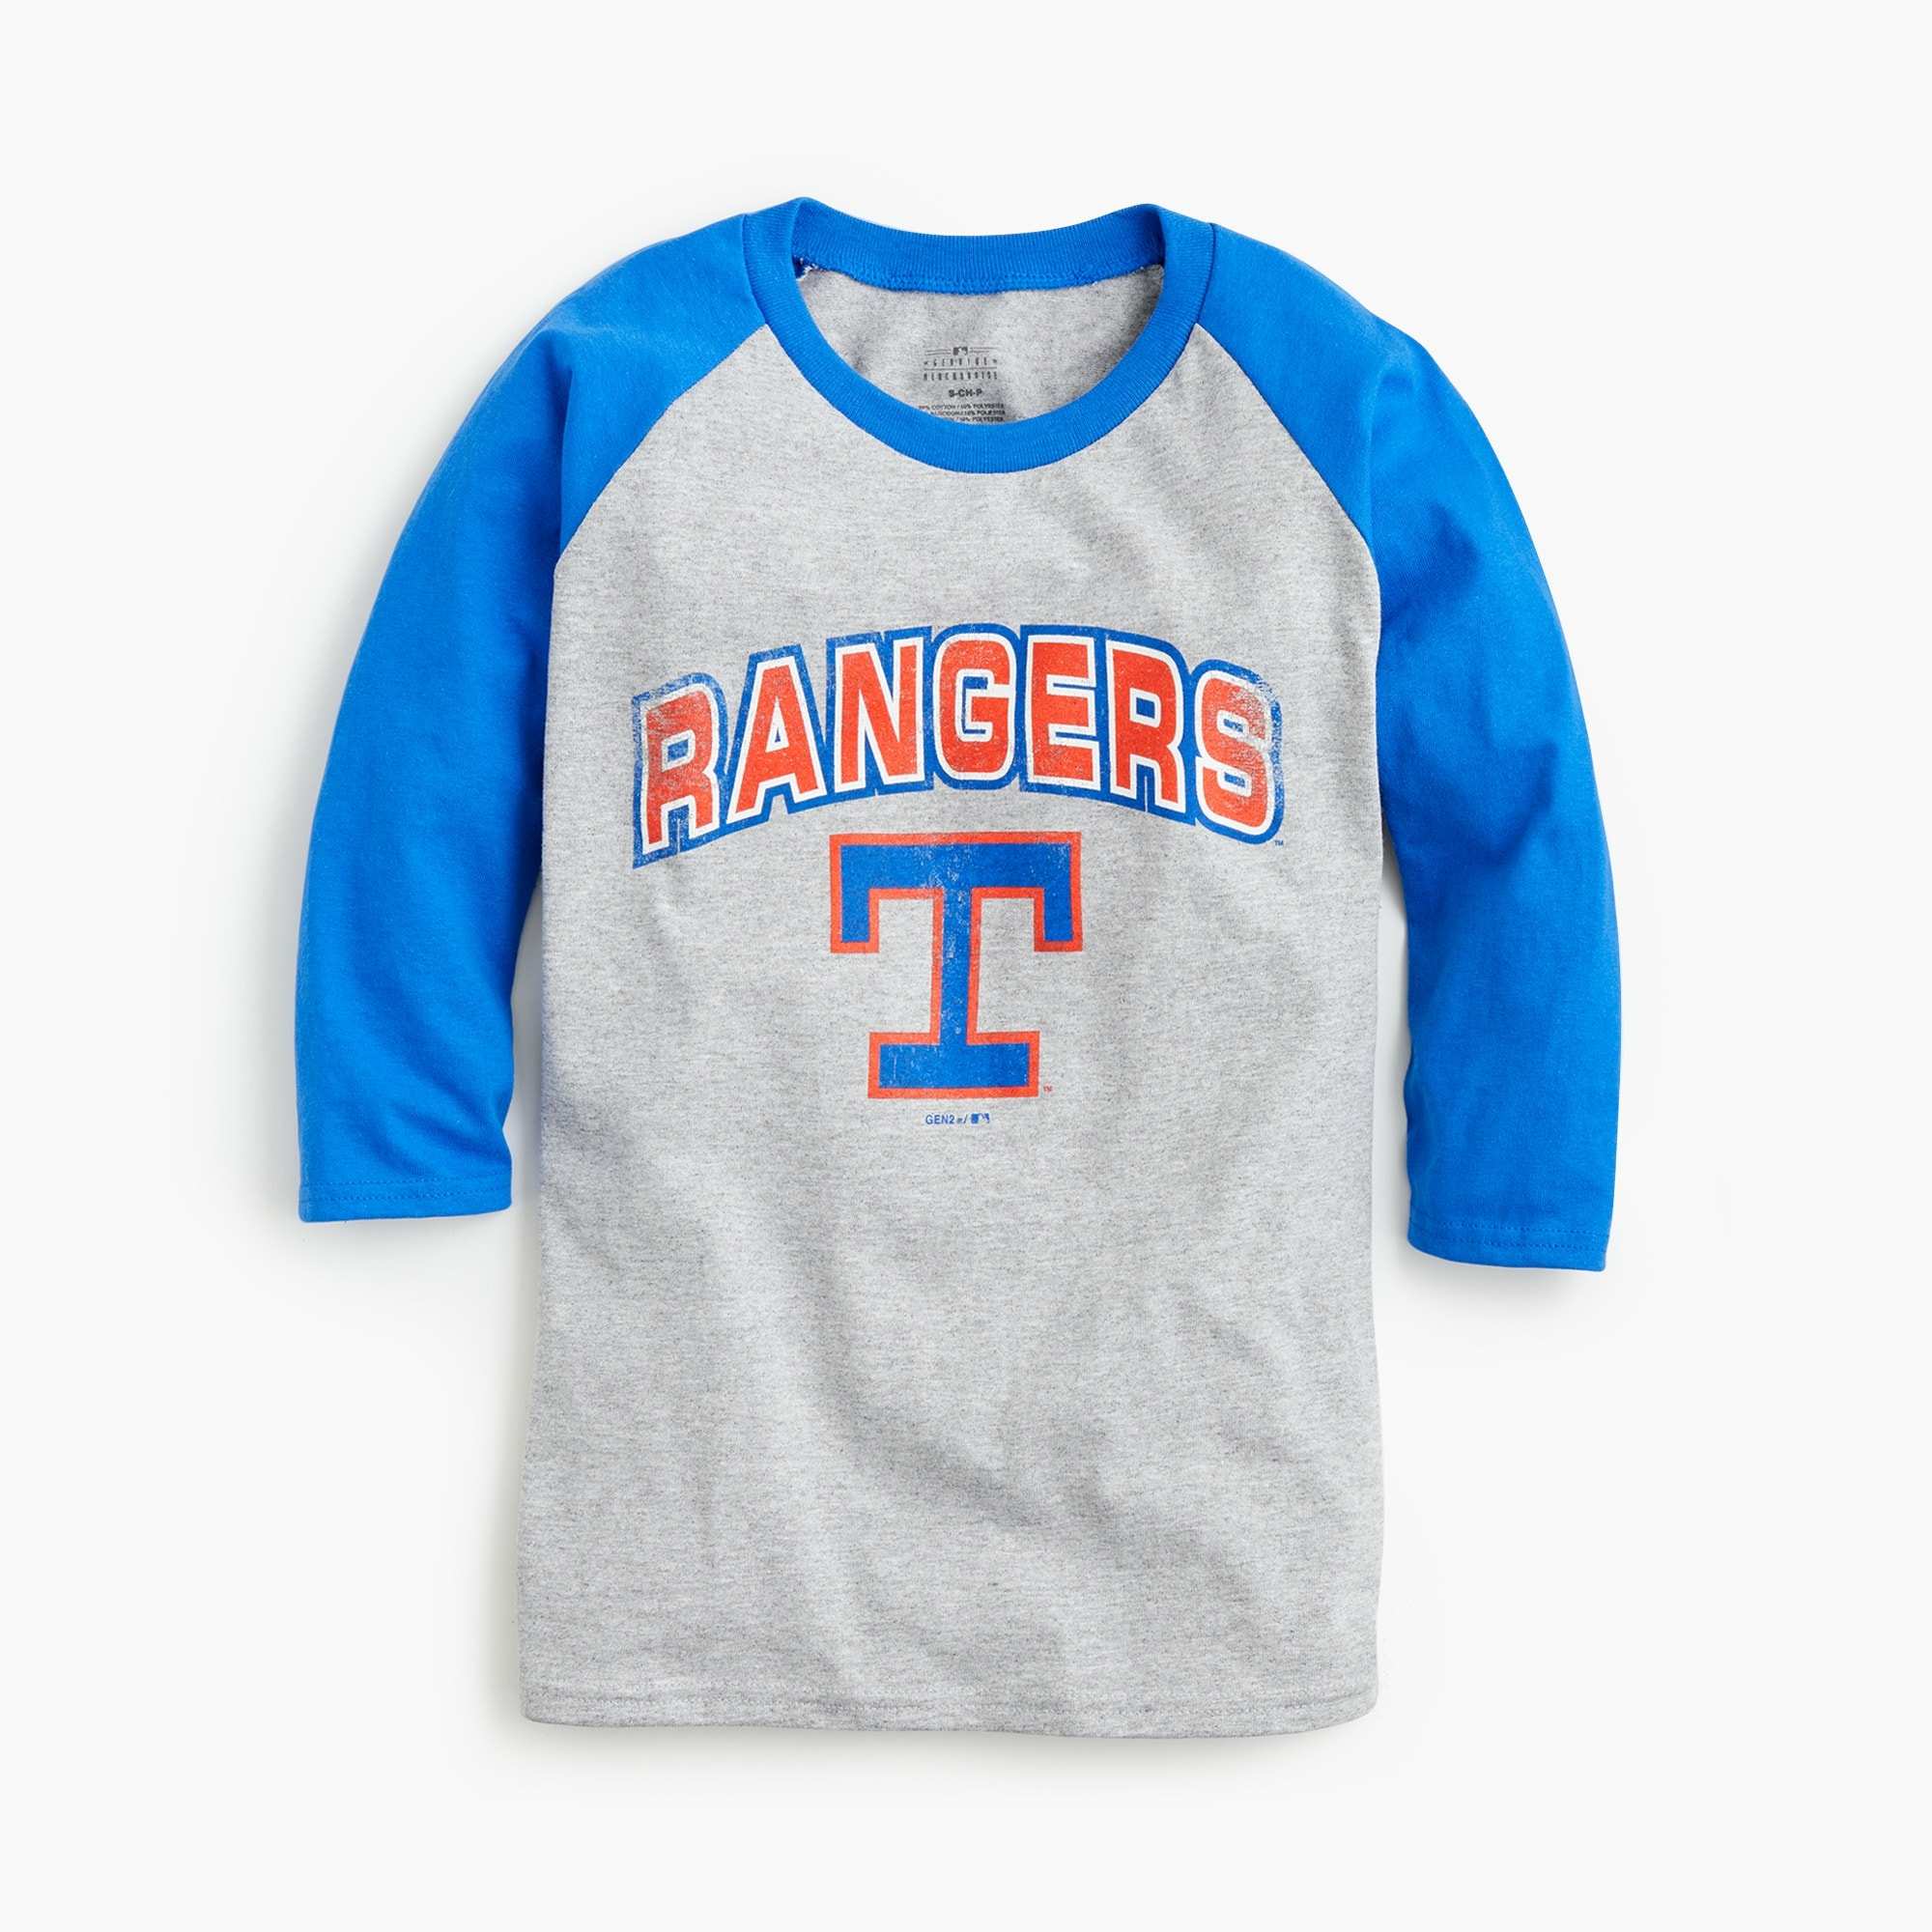 Kids' Texas Rangers baseball T-shirt boy new arrivals c